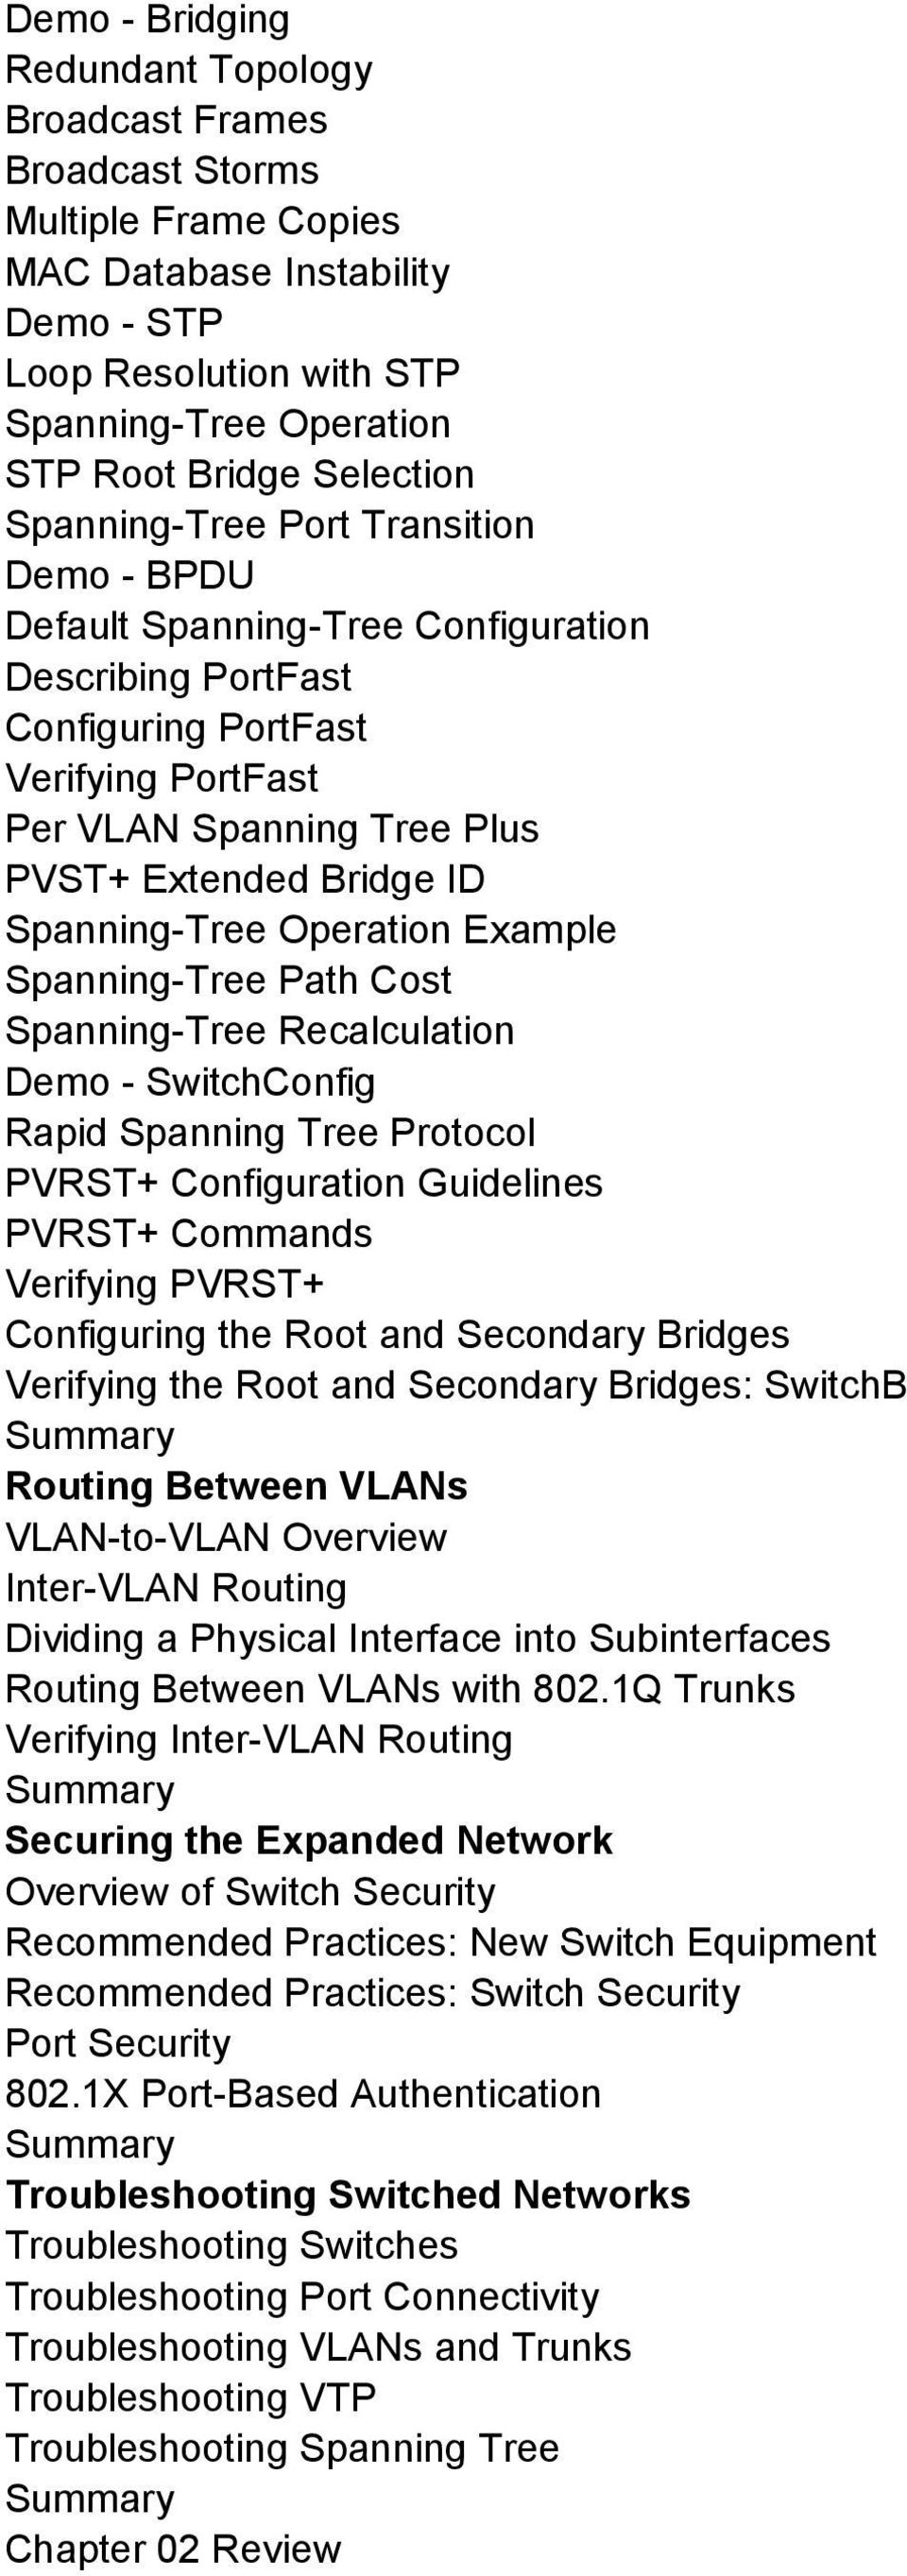 ID Spanning-Tree Operation Example Spanning-Tree Path Cost Spanning-Tree Recalculation Demo - SwitchConfig Rapid Spanning Tree Protocol PVRST+ Configuration Guidelines PVRST+ Commands Verifying